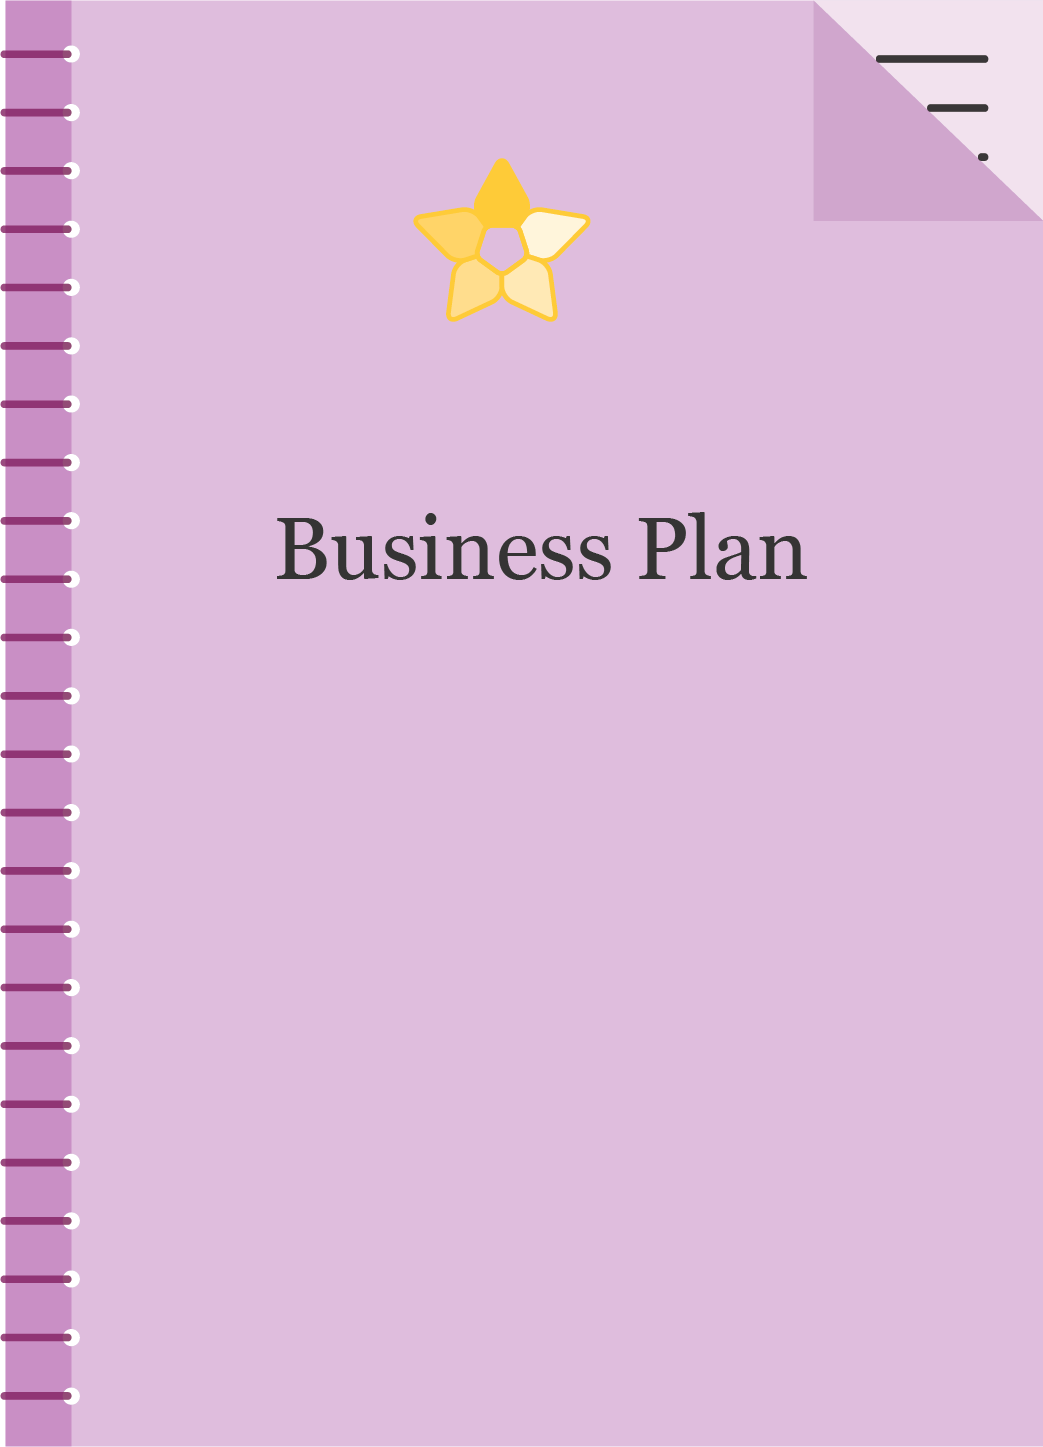 business-plan-dc6acbcca3ec06581d10f3d9b45849e0.png